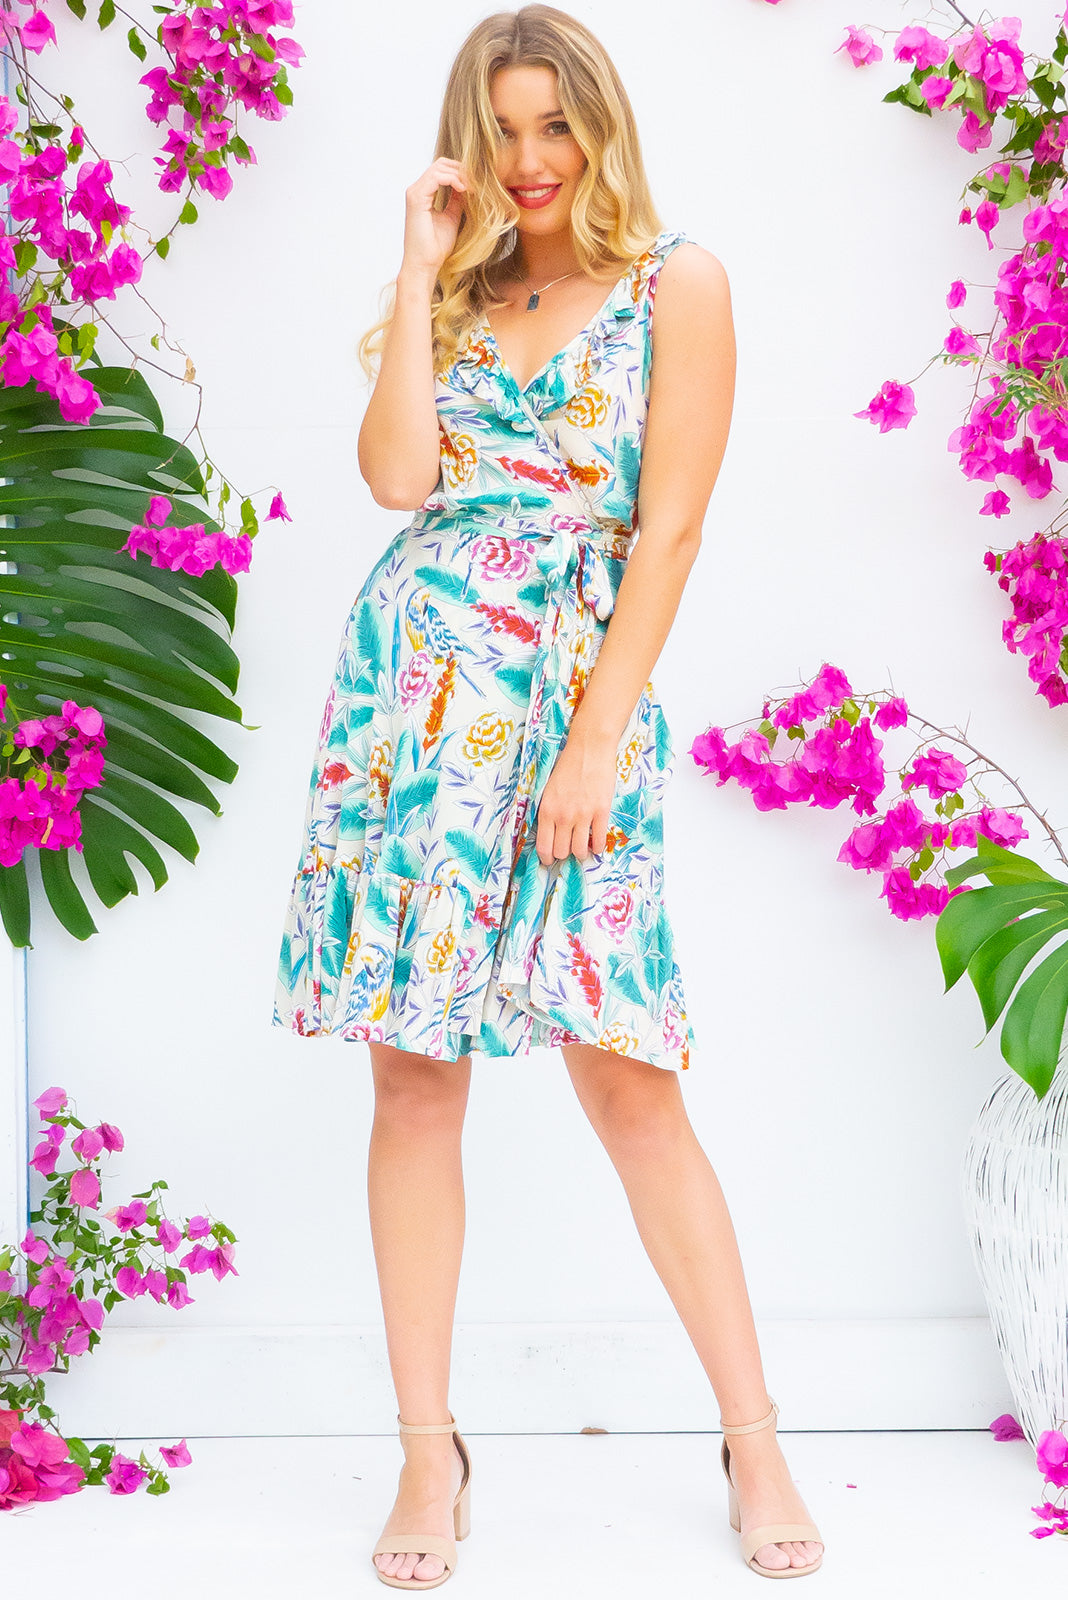 Paloma Porcelain Parrot Wrap Dress features a flattering wrap around shape, sleeveless bodice with a frill and comes in soft cream based bird and botanical print woven rayon